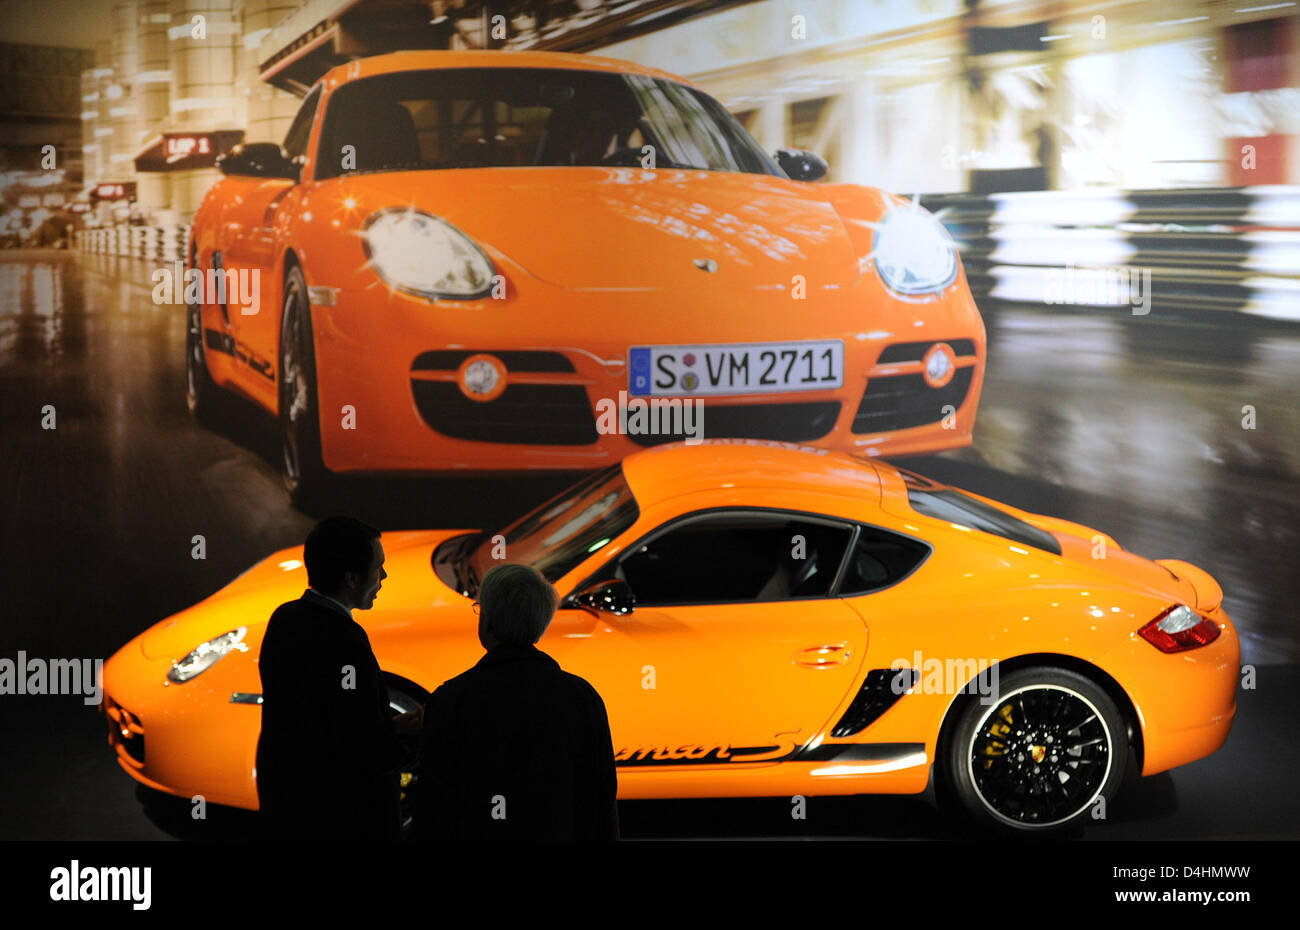 Visitors to the auto exhibition at the annual general meeting of ...